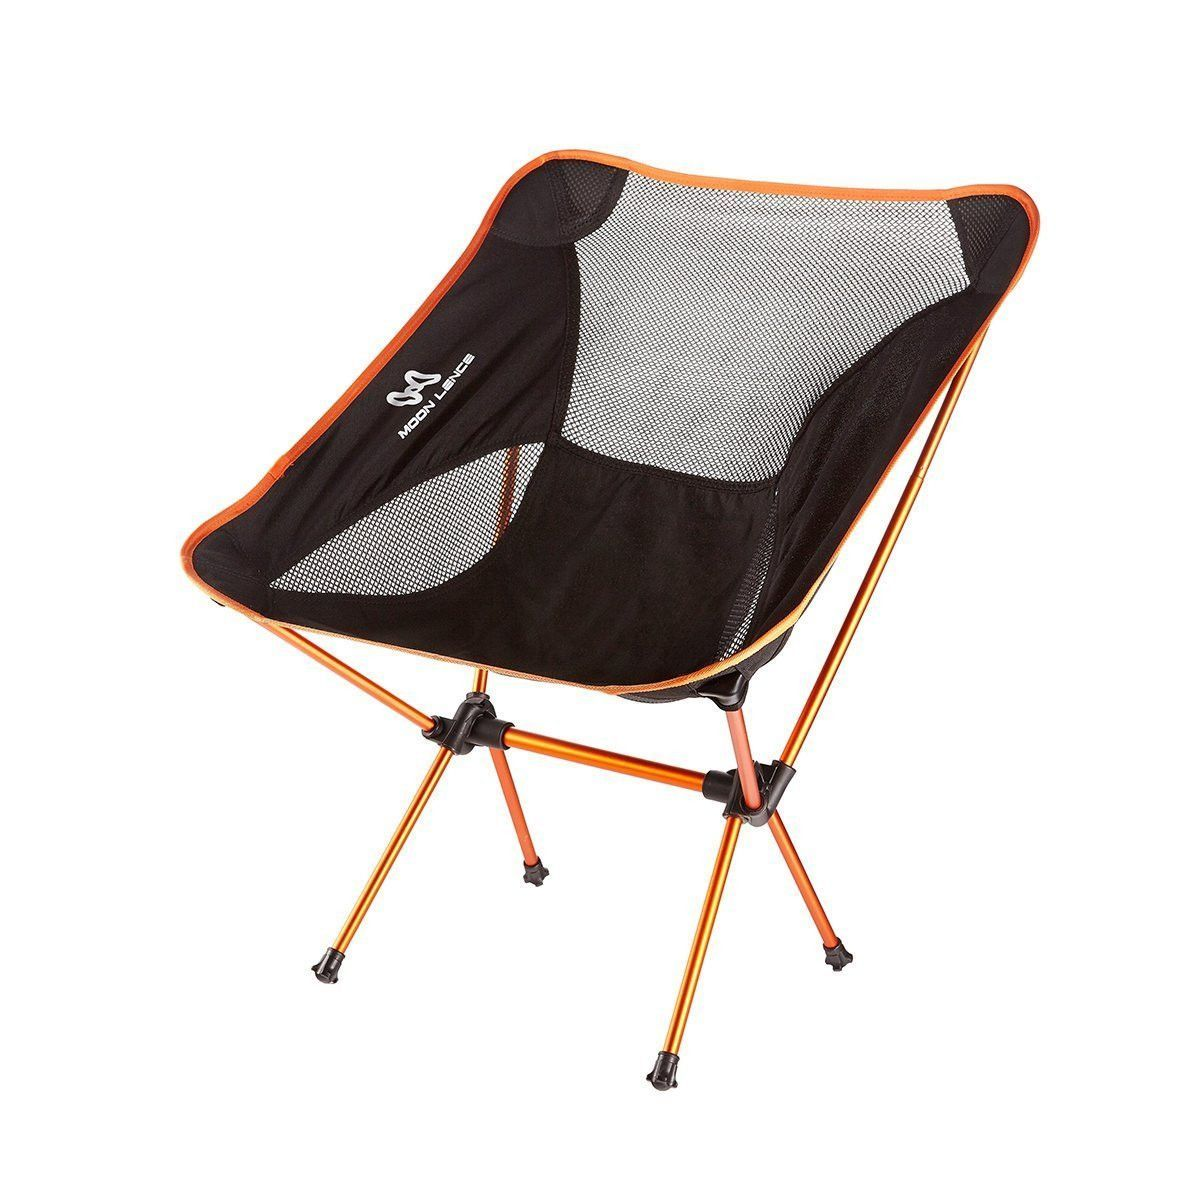 Moon Lence Ultralight Folding Chairs Heavy Duty Camping Beach With Carry Bag